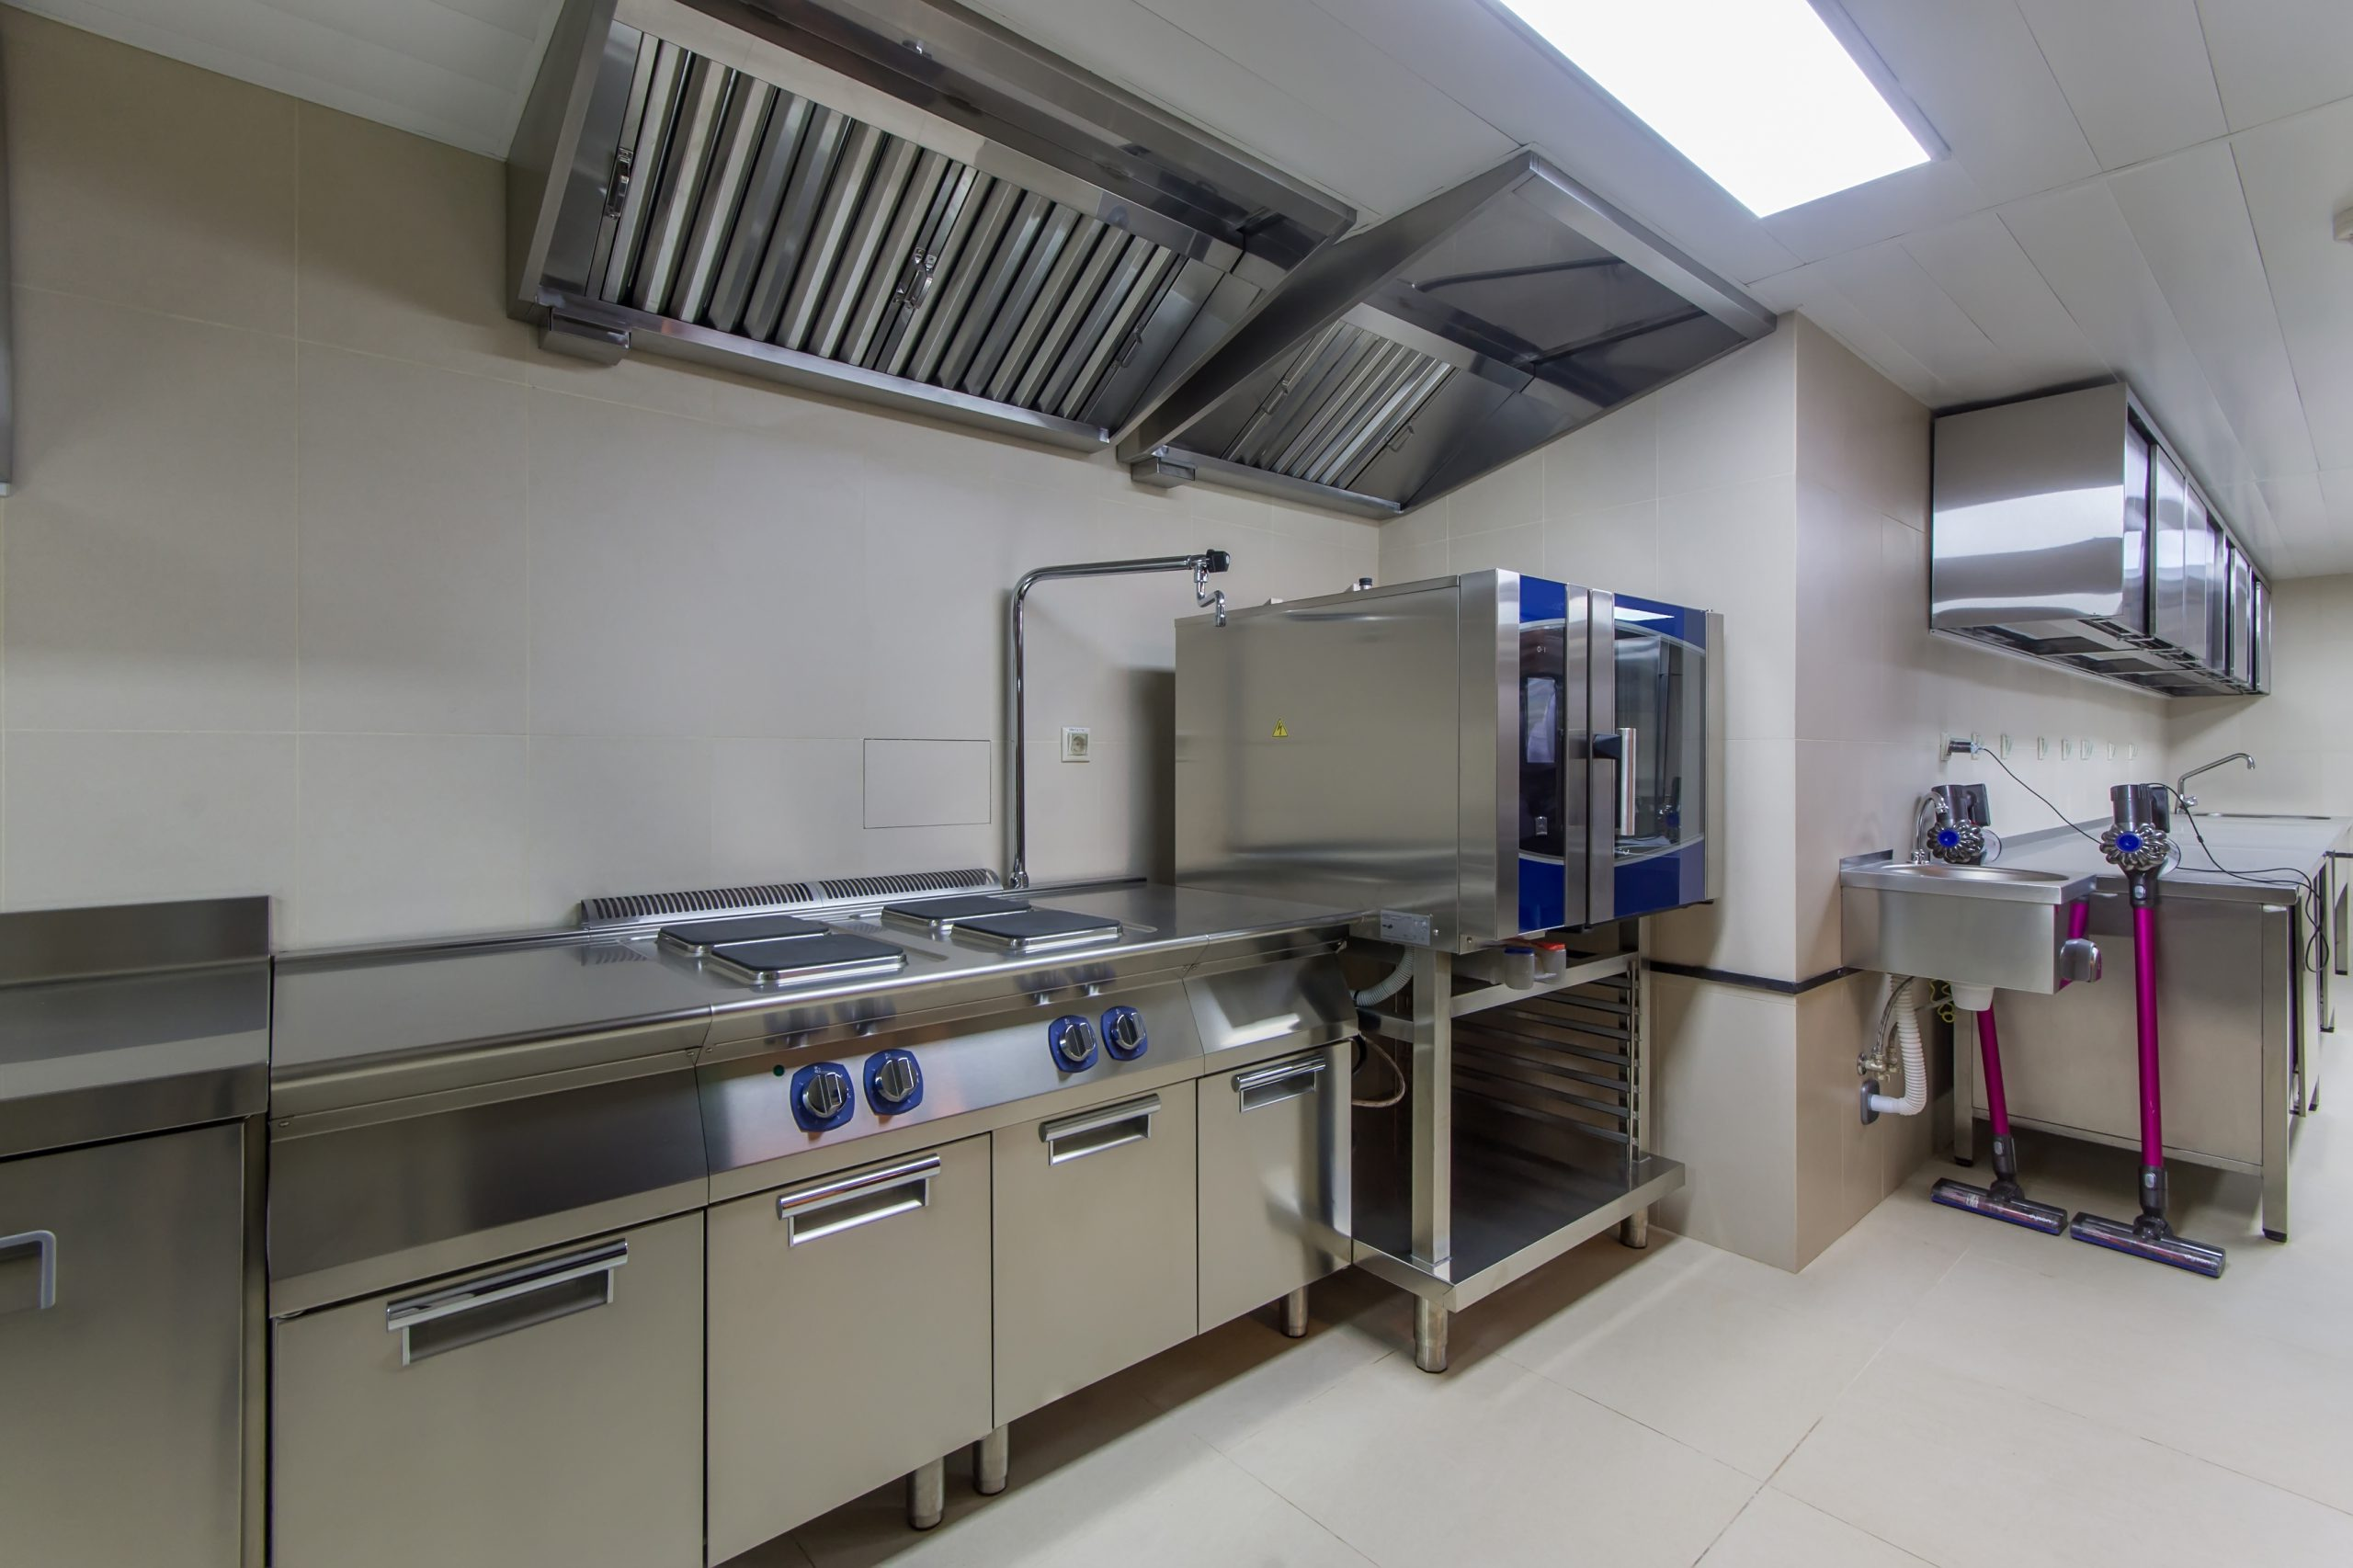 commercial kitchen equipment service and installation